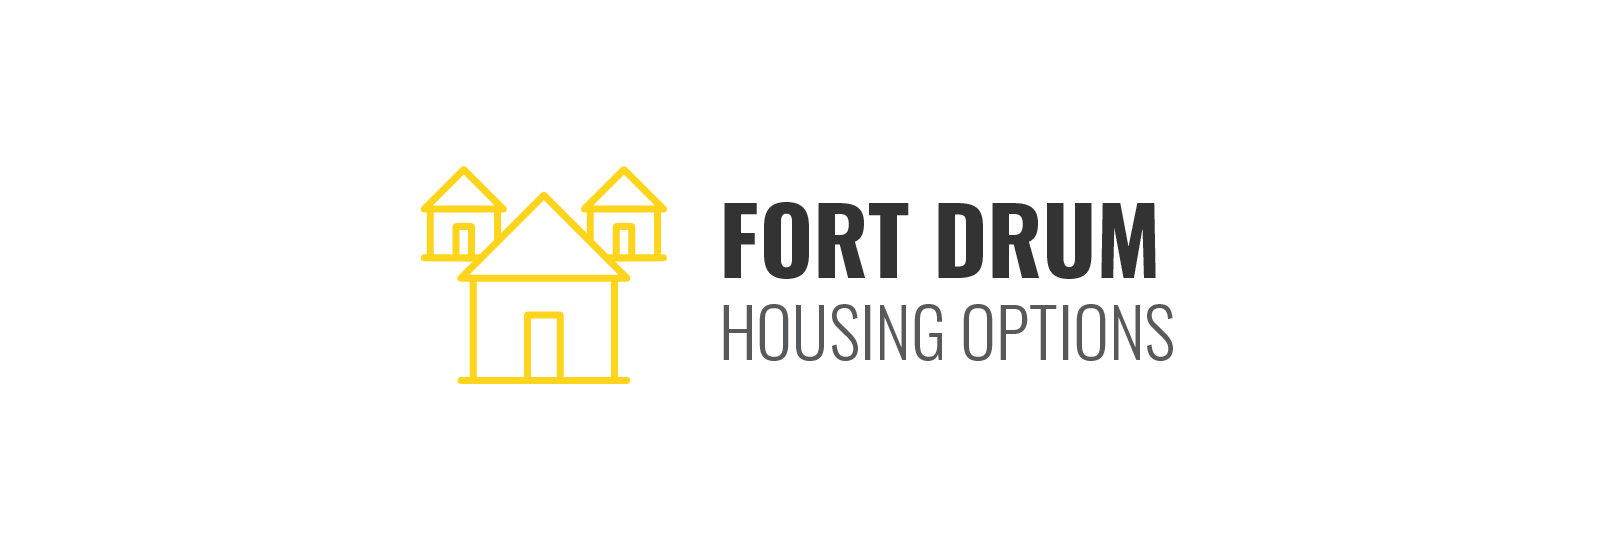 Fort Drum Housing Options